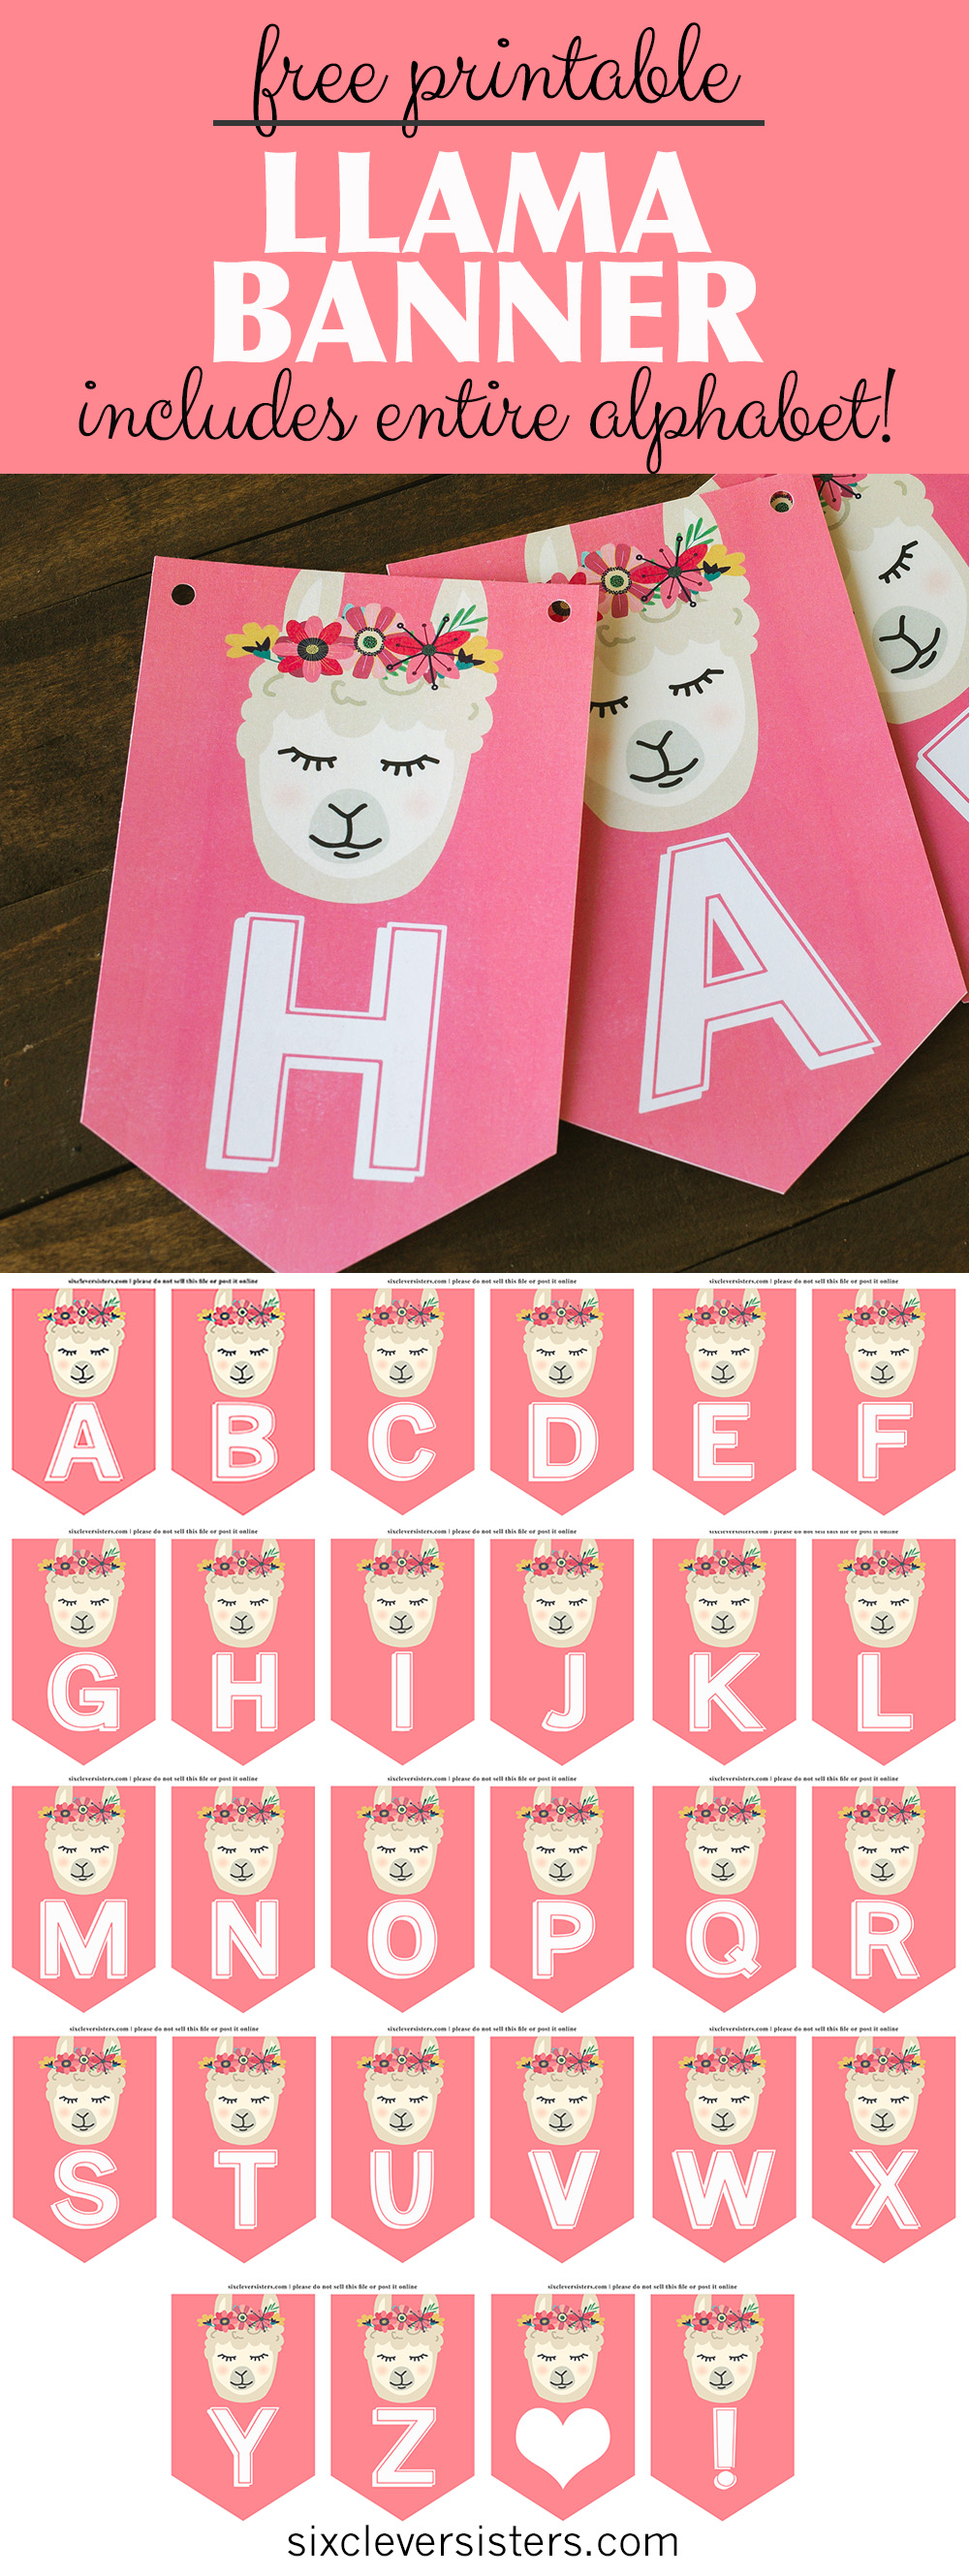 image regarding Llama Printable referred to as Llama Banner Free of charge Printable - 6 Wise Sisters